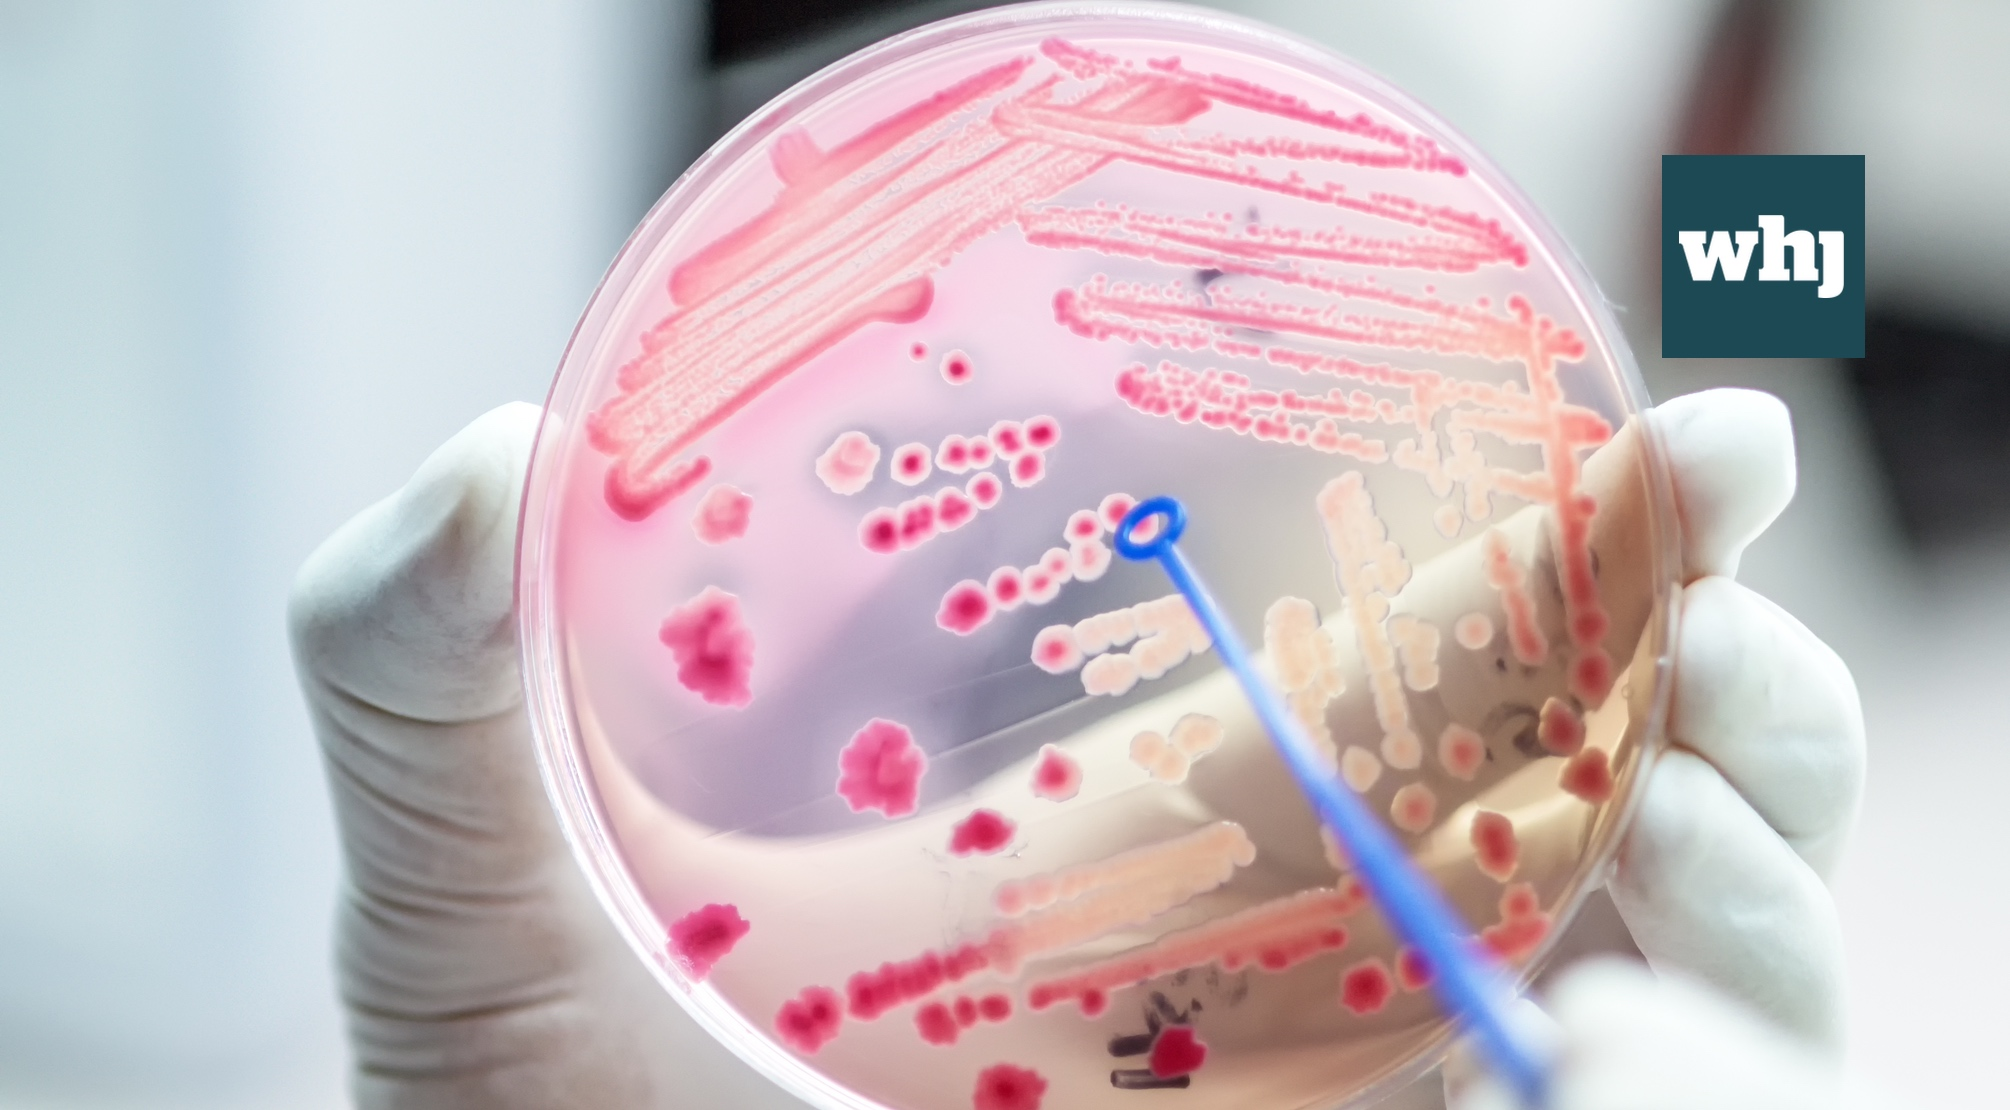 The UK leads the fight against antimicrobial resistance